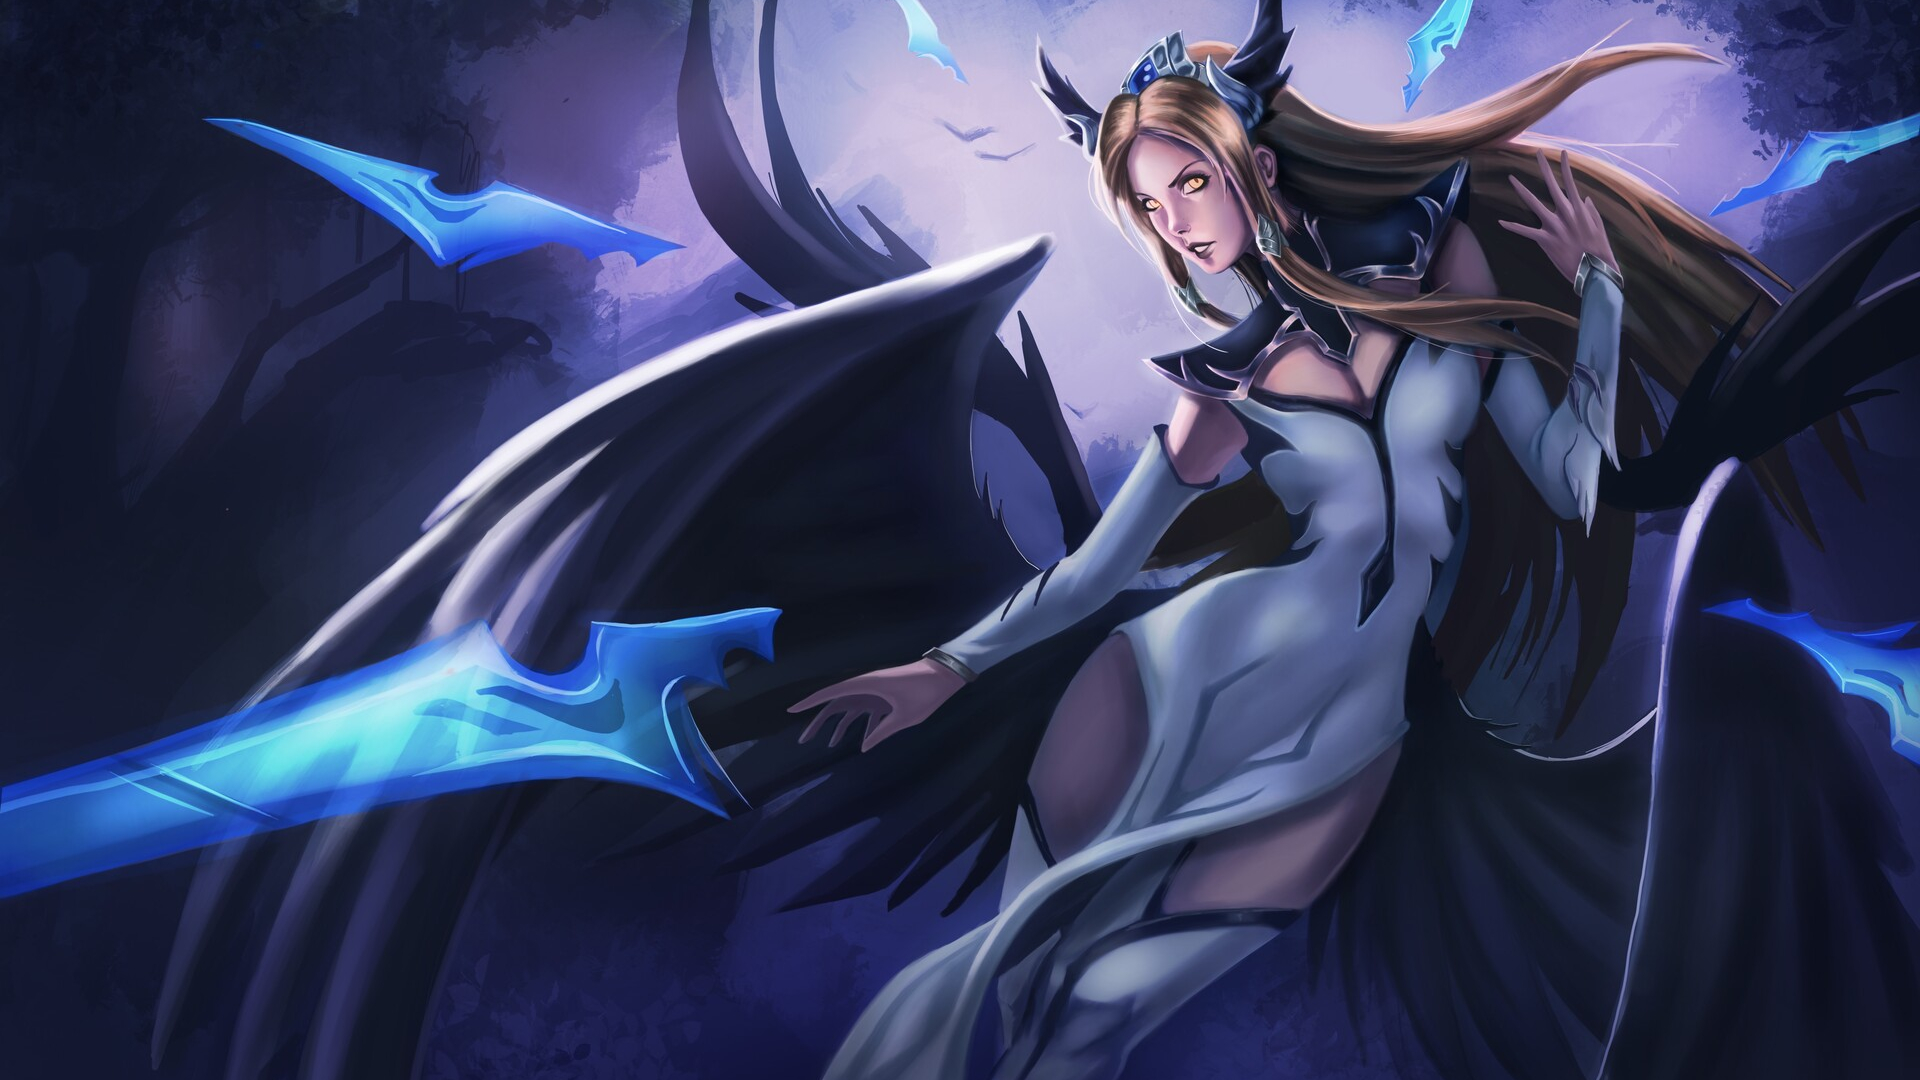 Free Download Irelia Invictus Skin Lol Fanart By Damien Ajoku 4646 Wallpapers 1920x1088 For Your Desktop Mobile Tablet Explore 44 Irelia Wallpaper Irelia Wallpaper